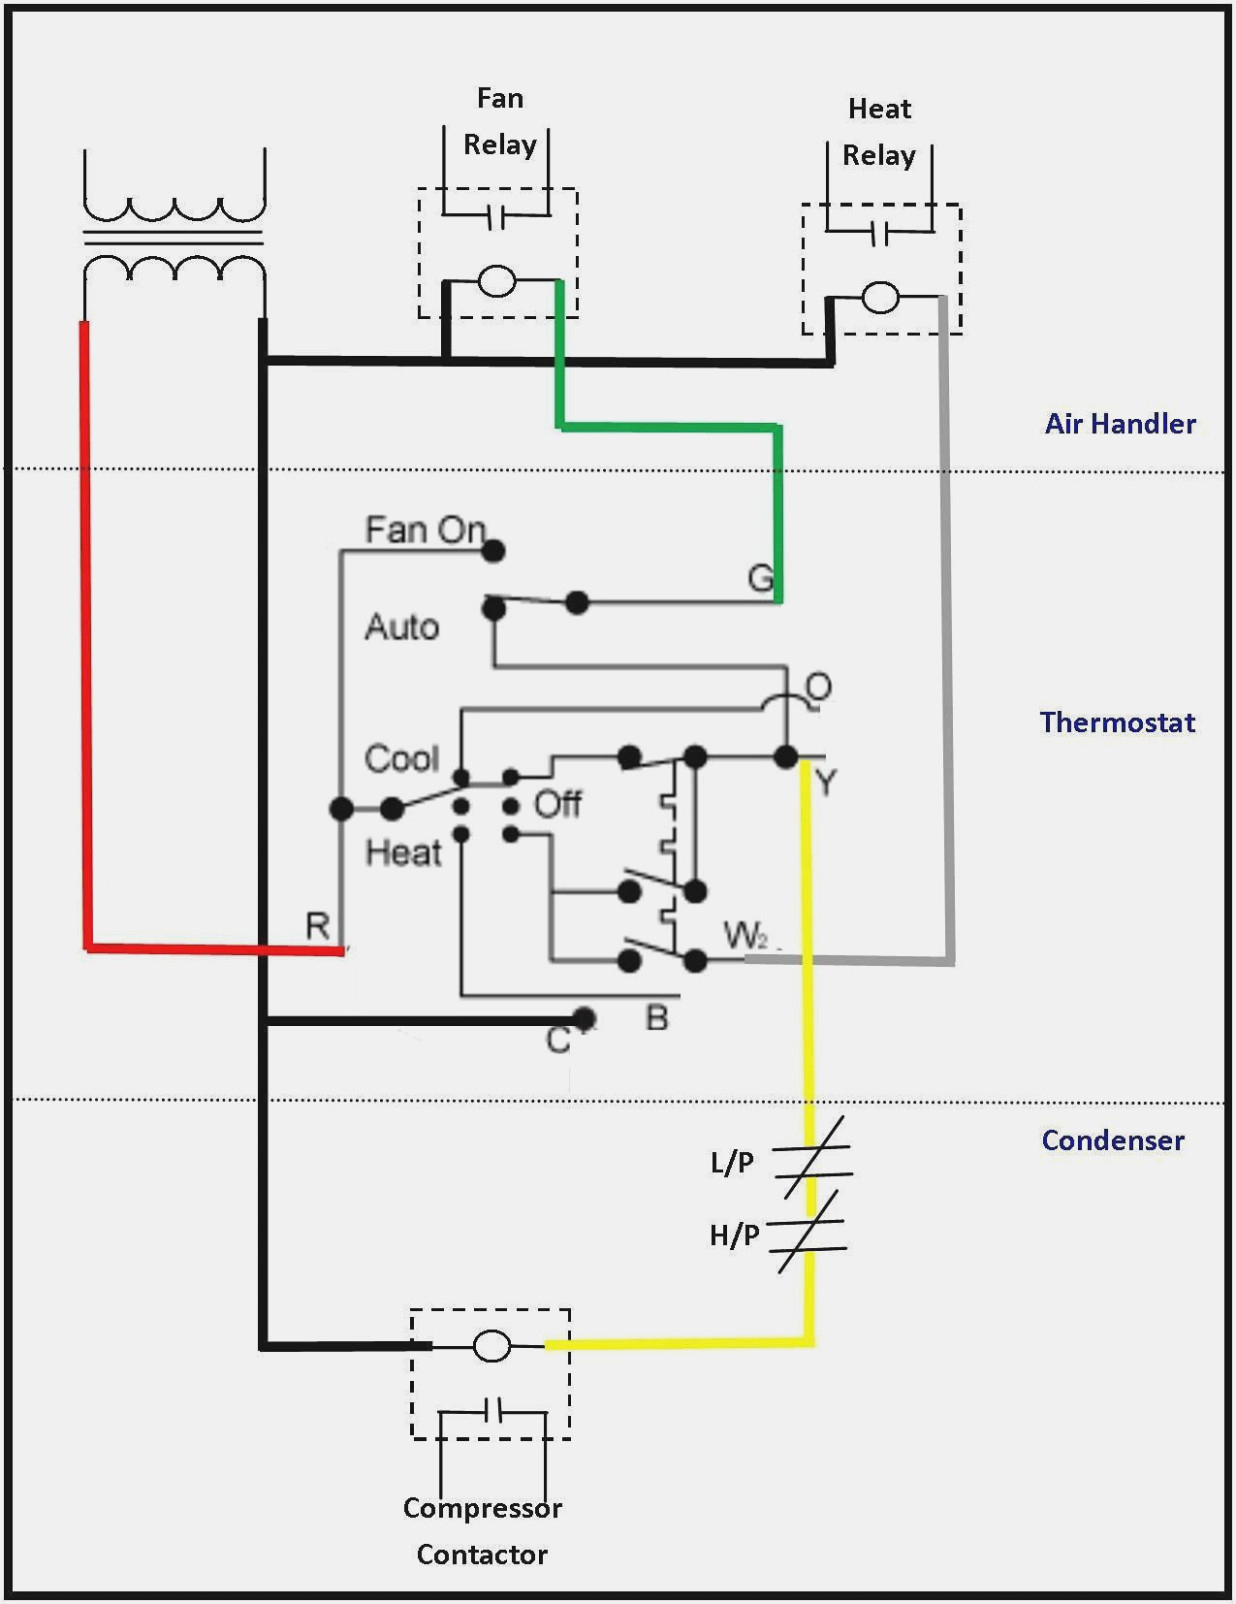 DIAGRAM] Oil Fired Furnace Wiring Diagram FULL Version HD Quality Wiring  Diagram - 2EVERETTELECTRICMS.COIFFURE-A-DOMICILE-67.FR2everettelectricms.coiffure-a-domicile-67.fr